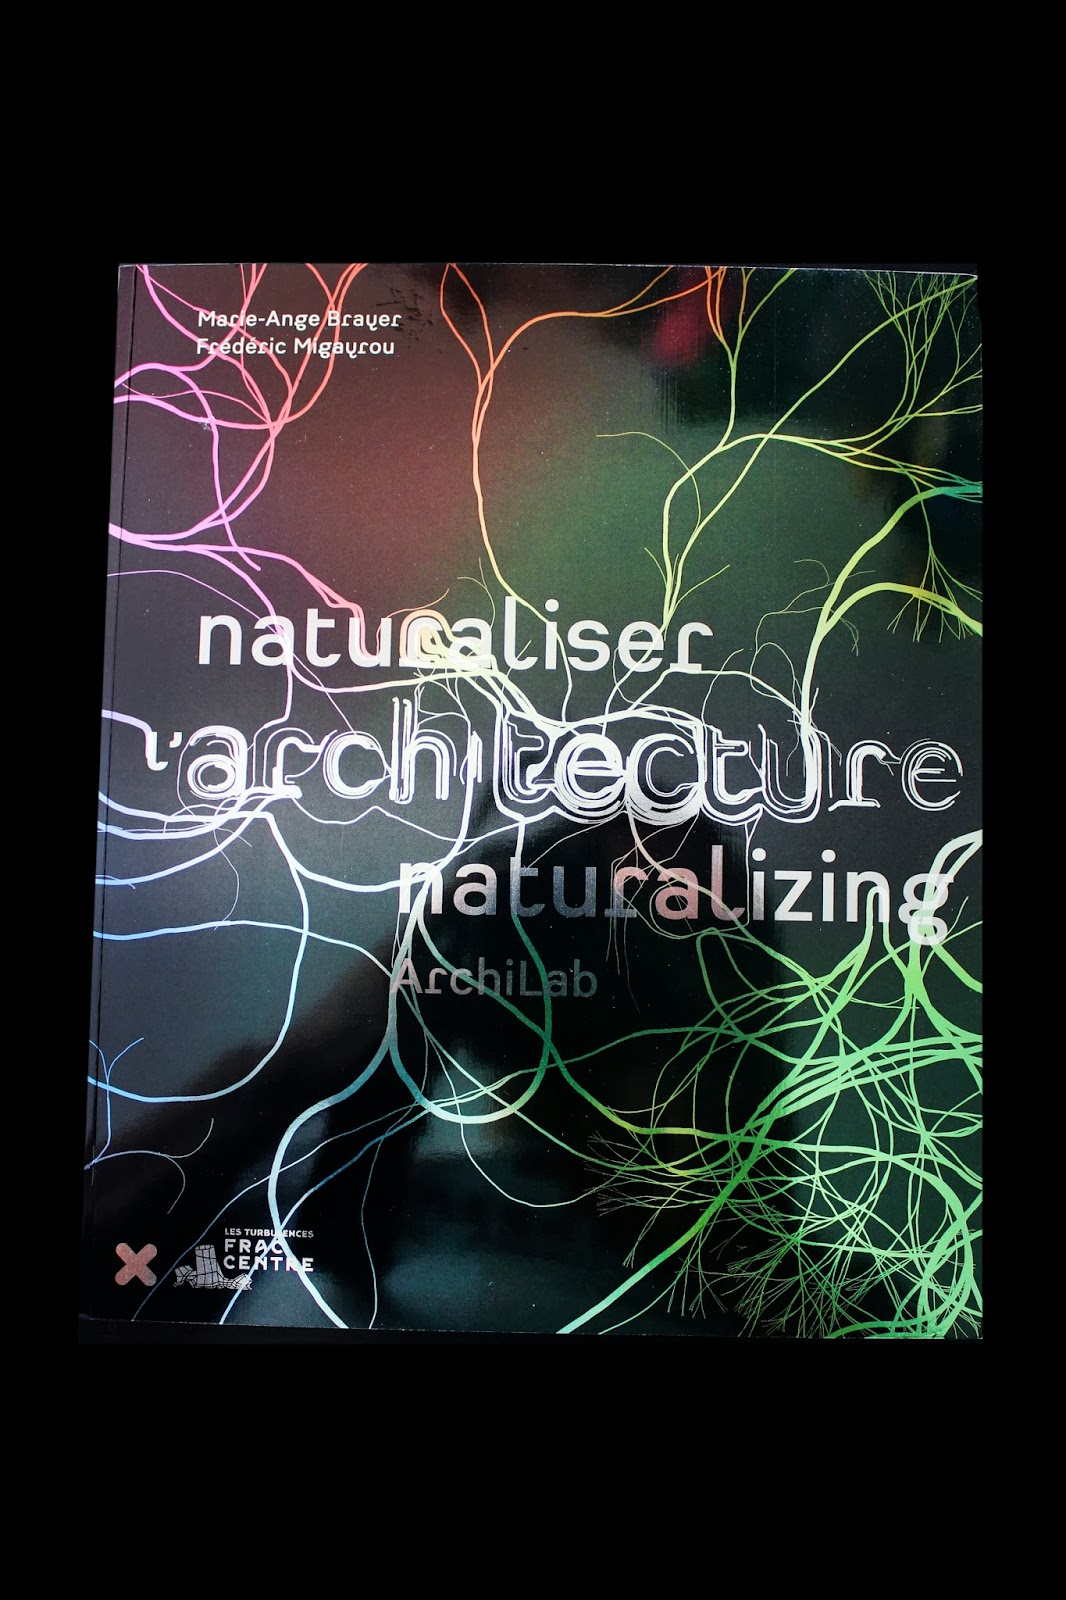 archilab architecture naturalizing catalog book (1)